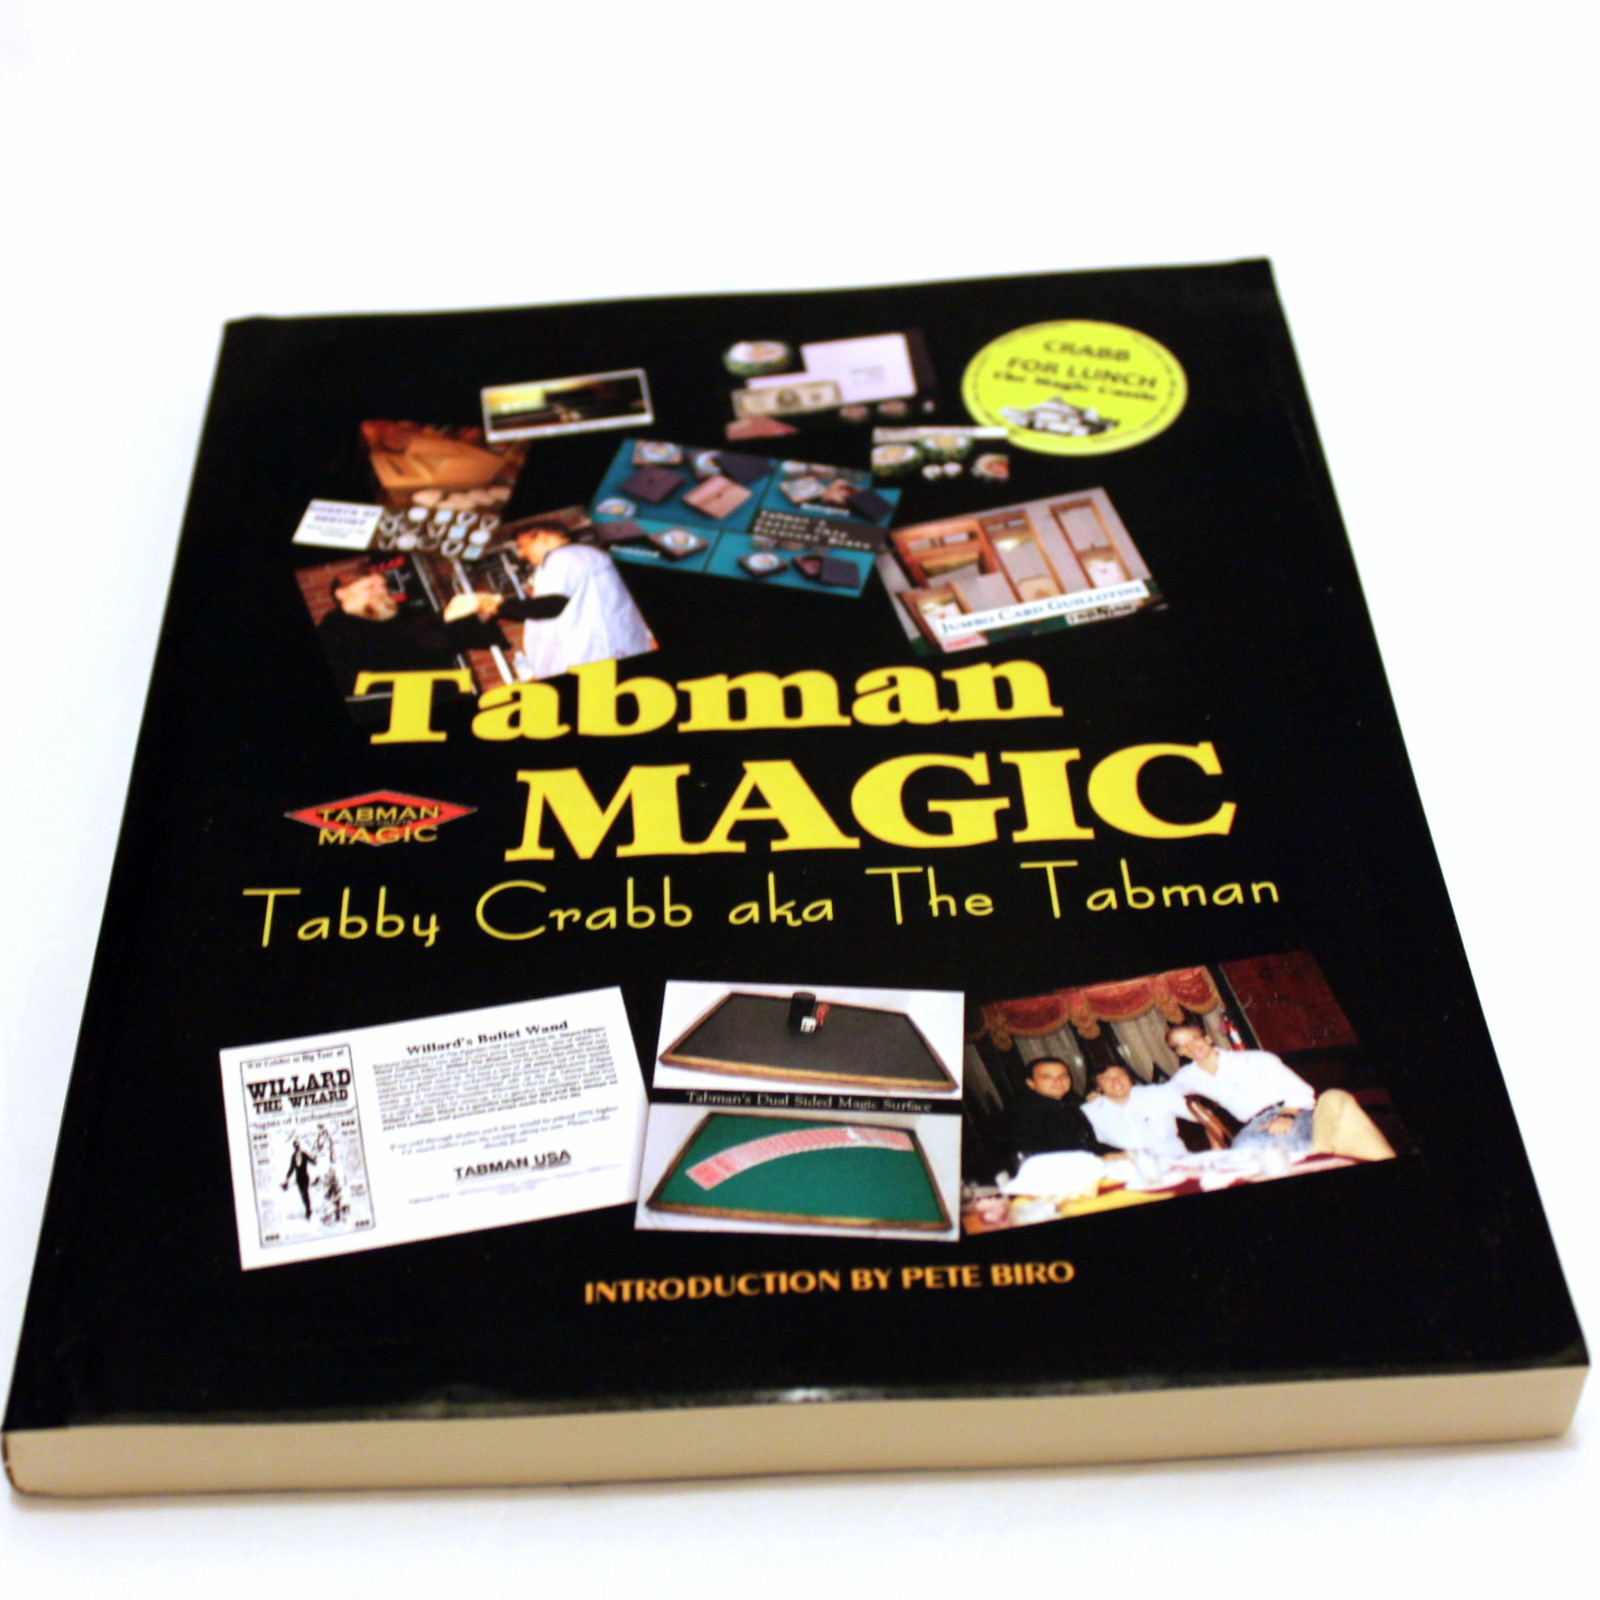 Tabman Magic by Tabby Crabb